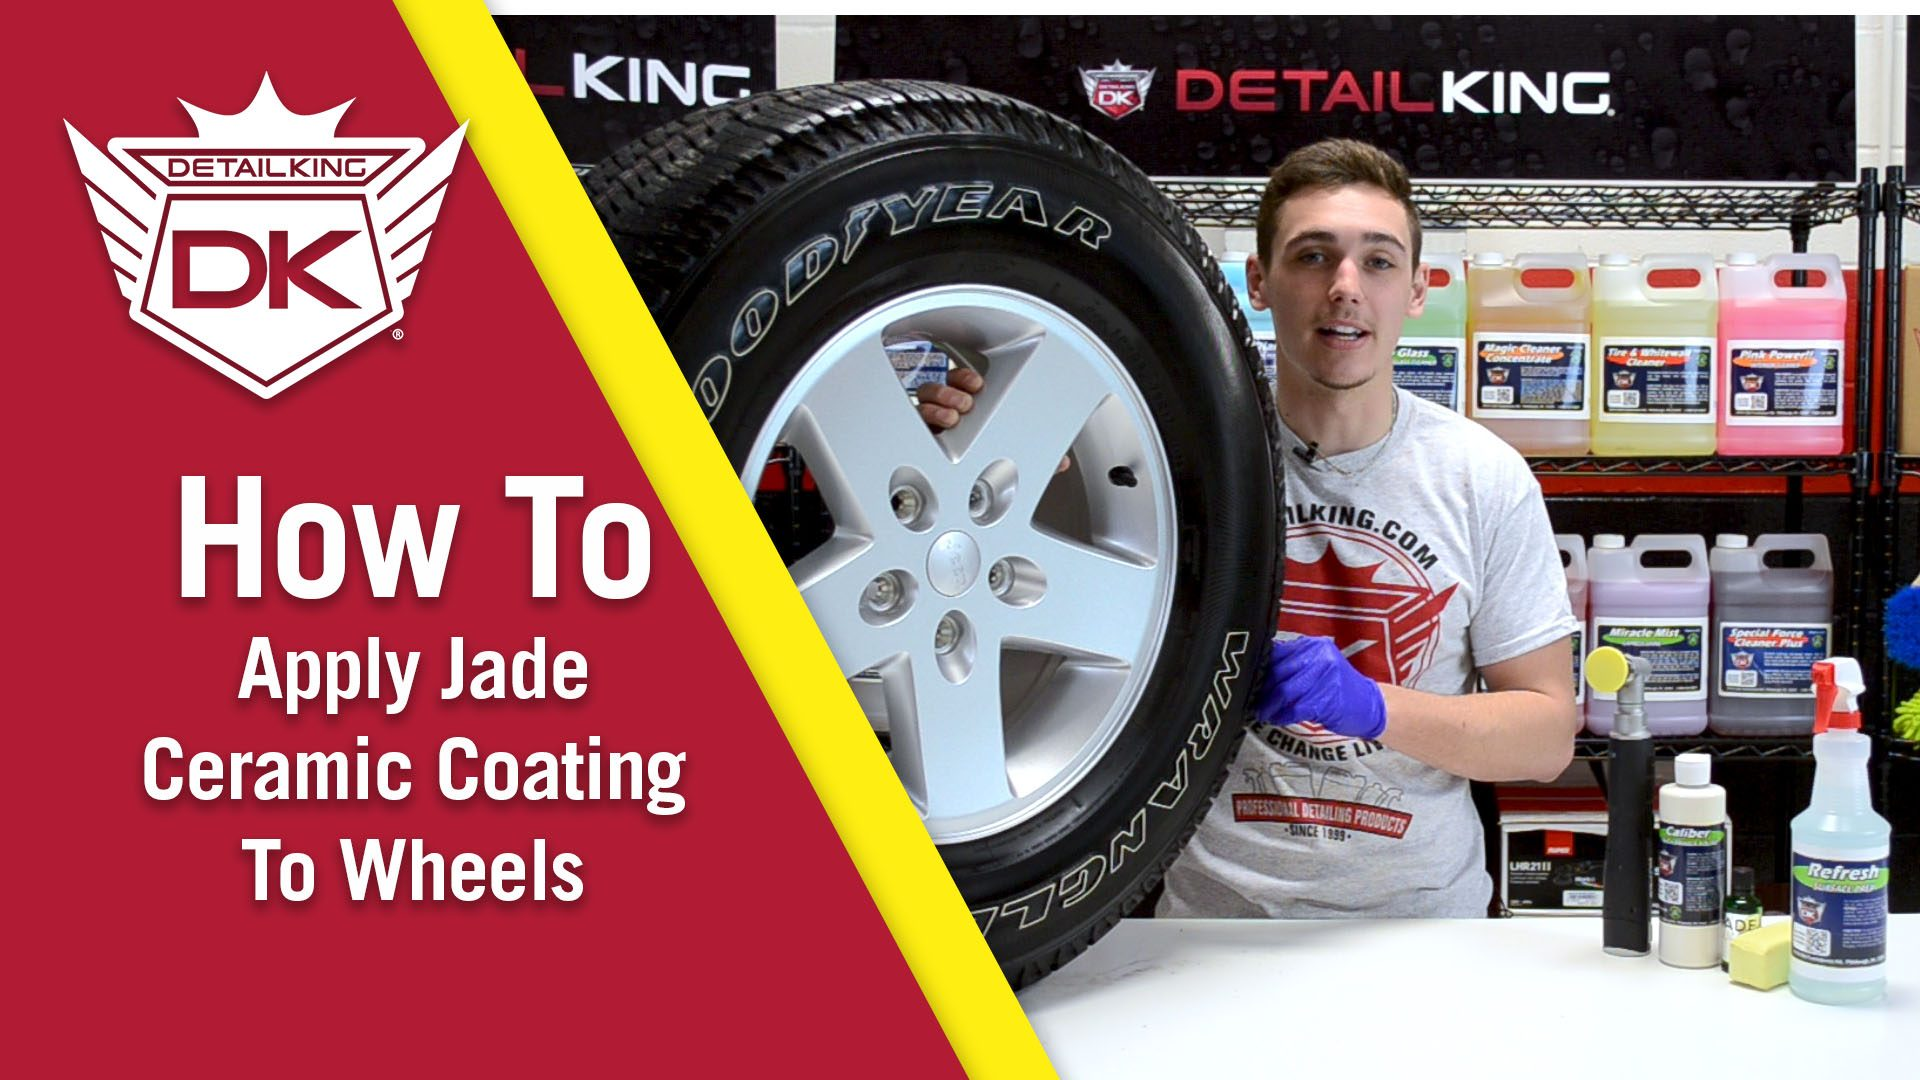 How To: Apply Jade Ceramic Coating To Wheels